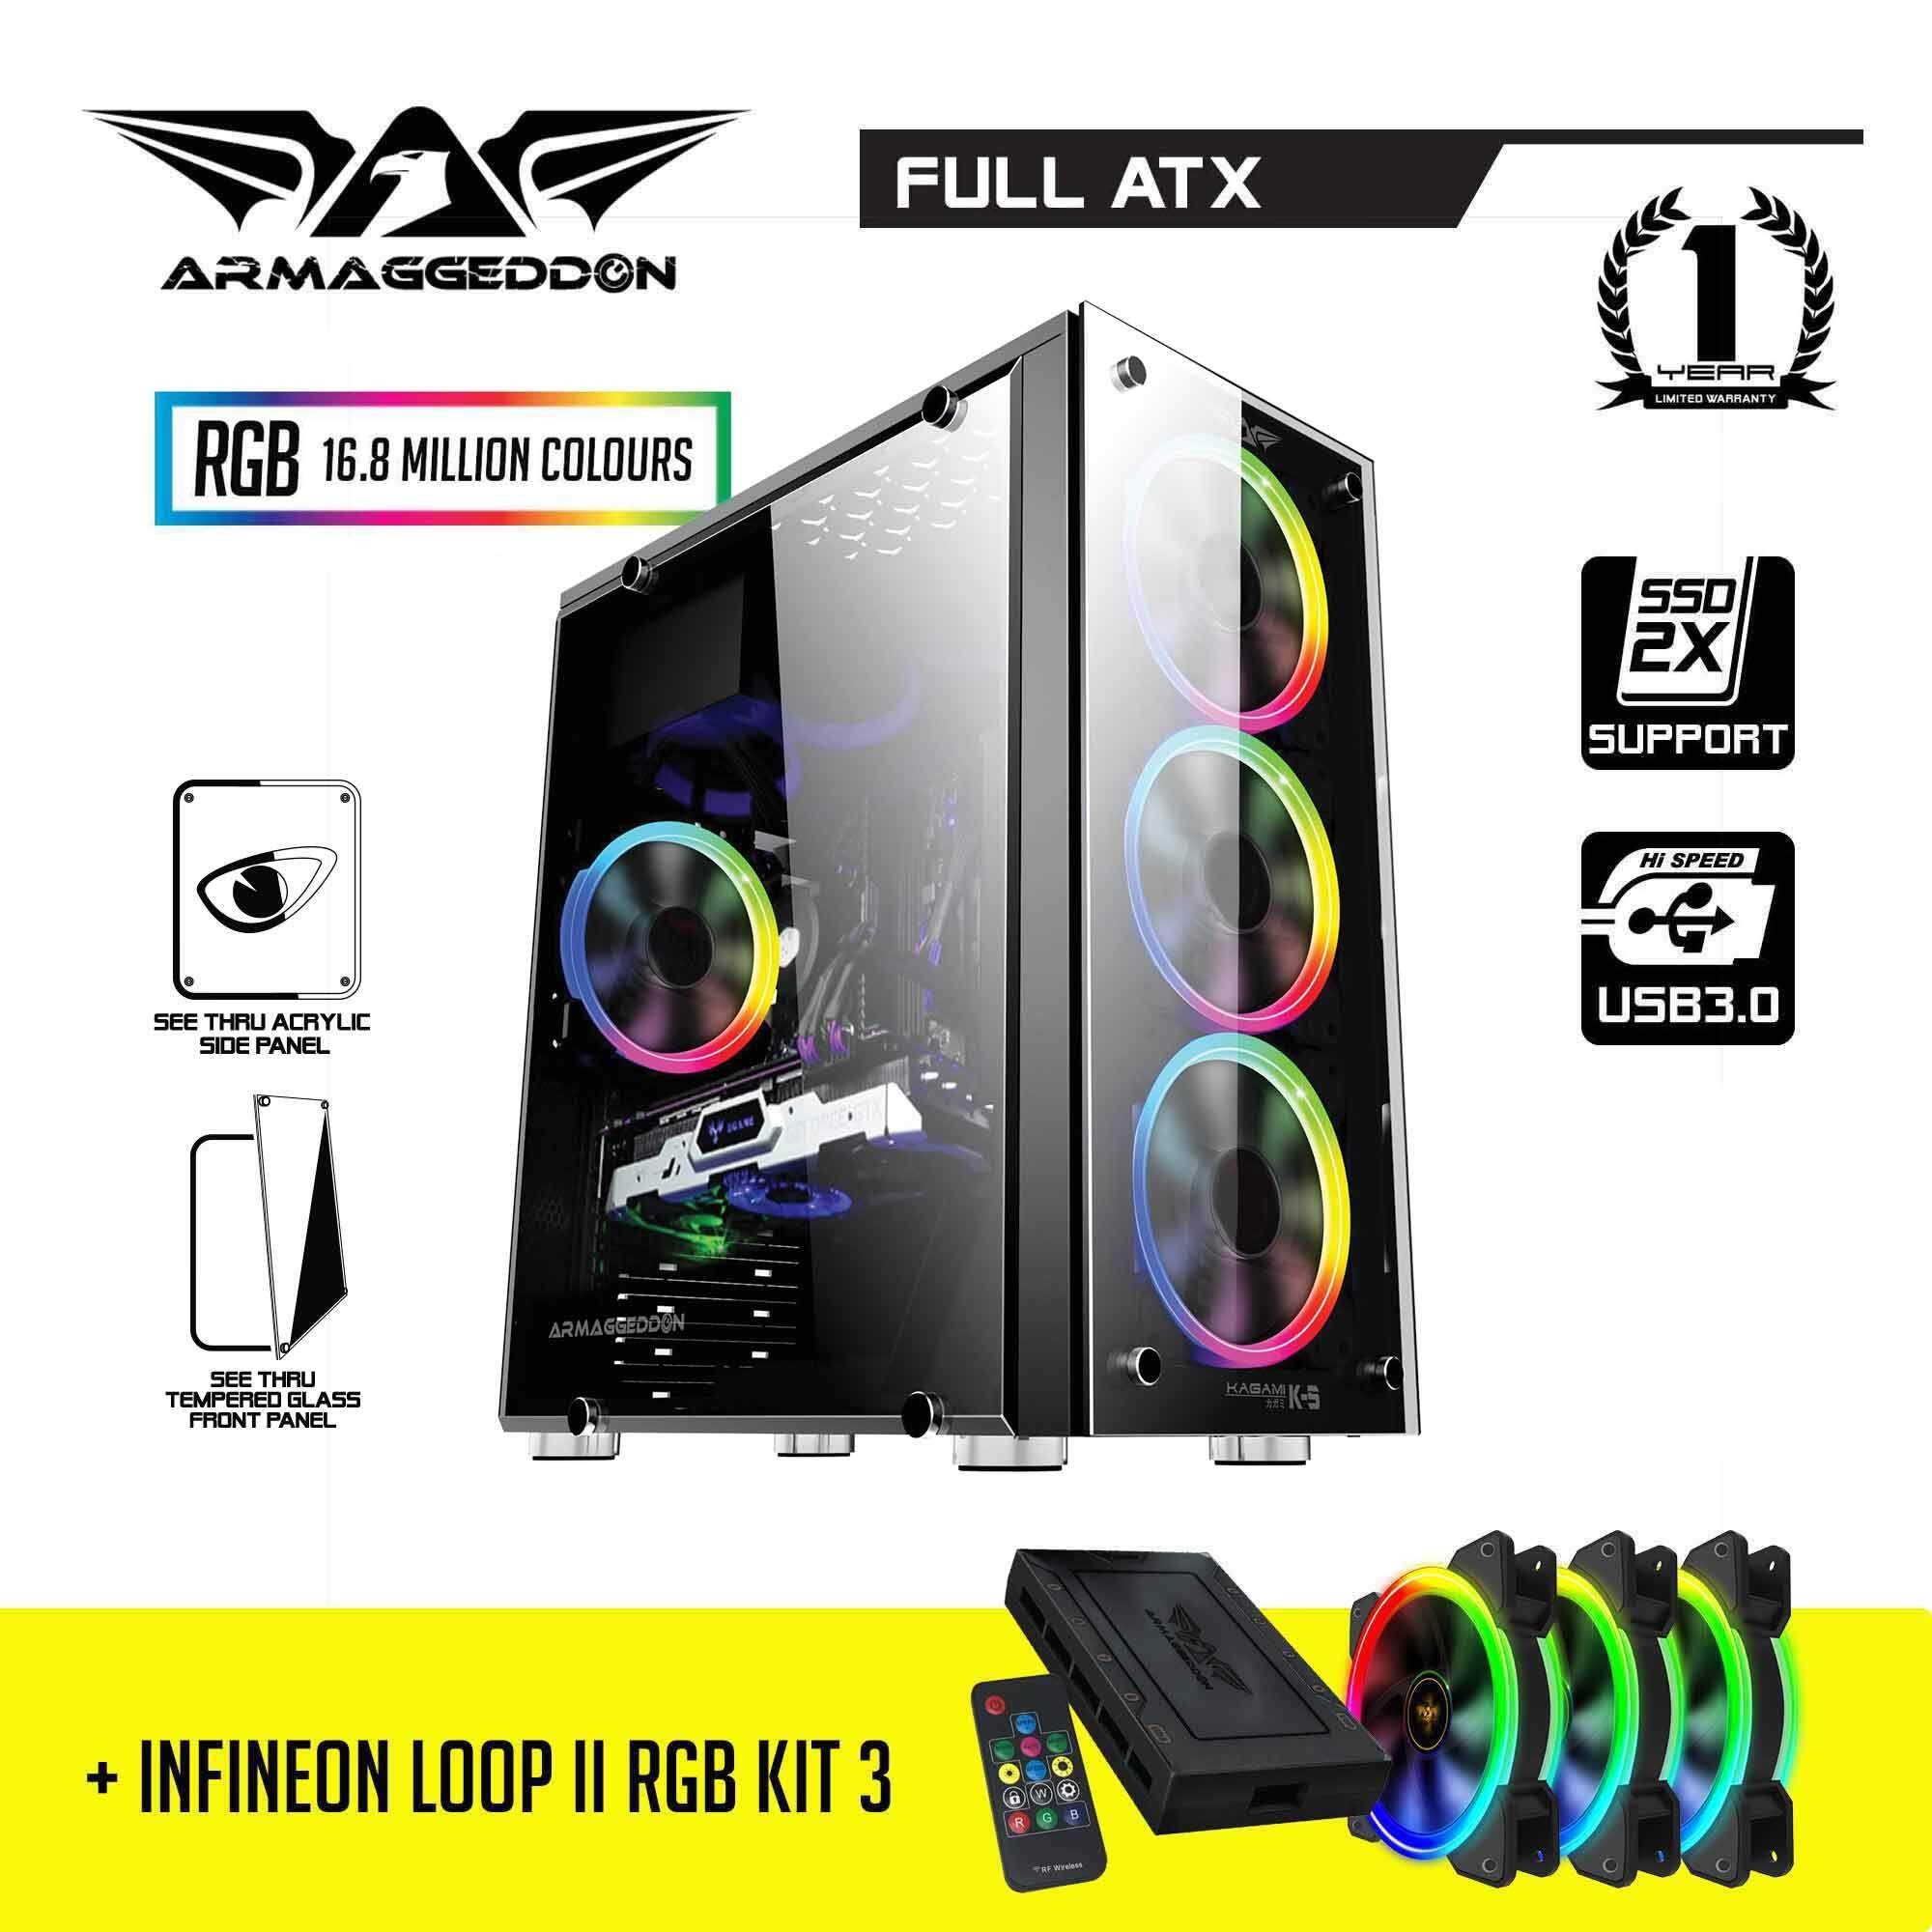 BUNDLE: Armaggeddon Kagami K5 Full ATX Gaming PC Case and Infineon Loop II Kit 3 RGB Fan and FX Controller Malaysia